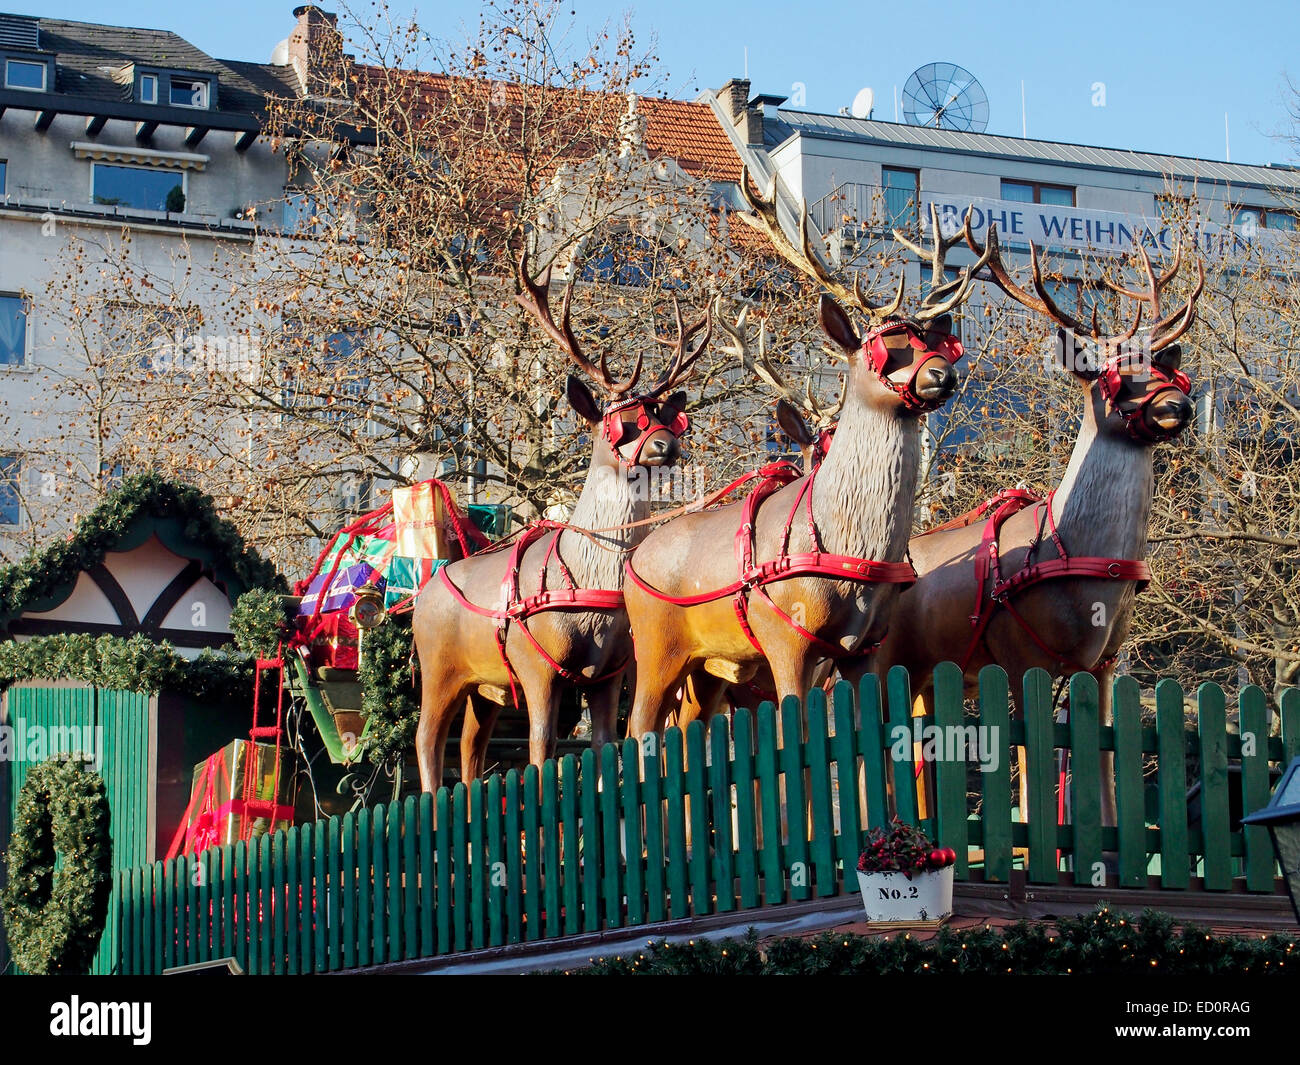 The reindeer and sleigh are ready in the Christmas market  (Weihnachtsmarkt) in the Rudolfplatz, Cologne, Germany, Stock Photo